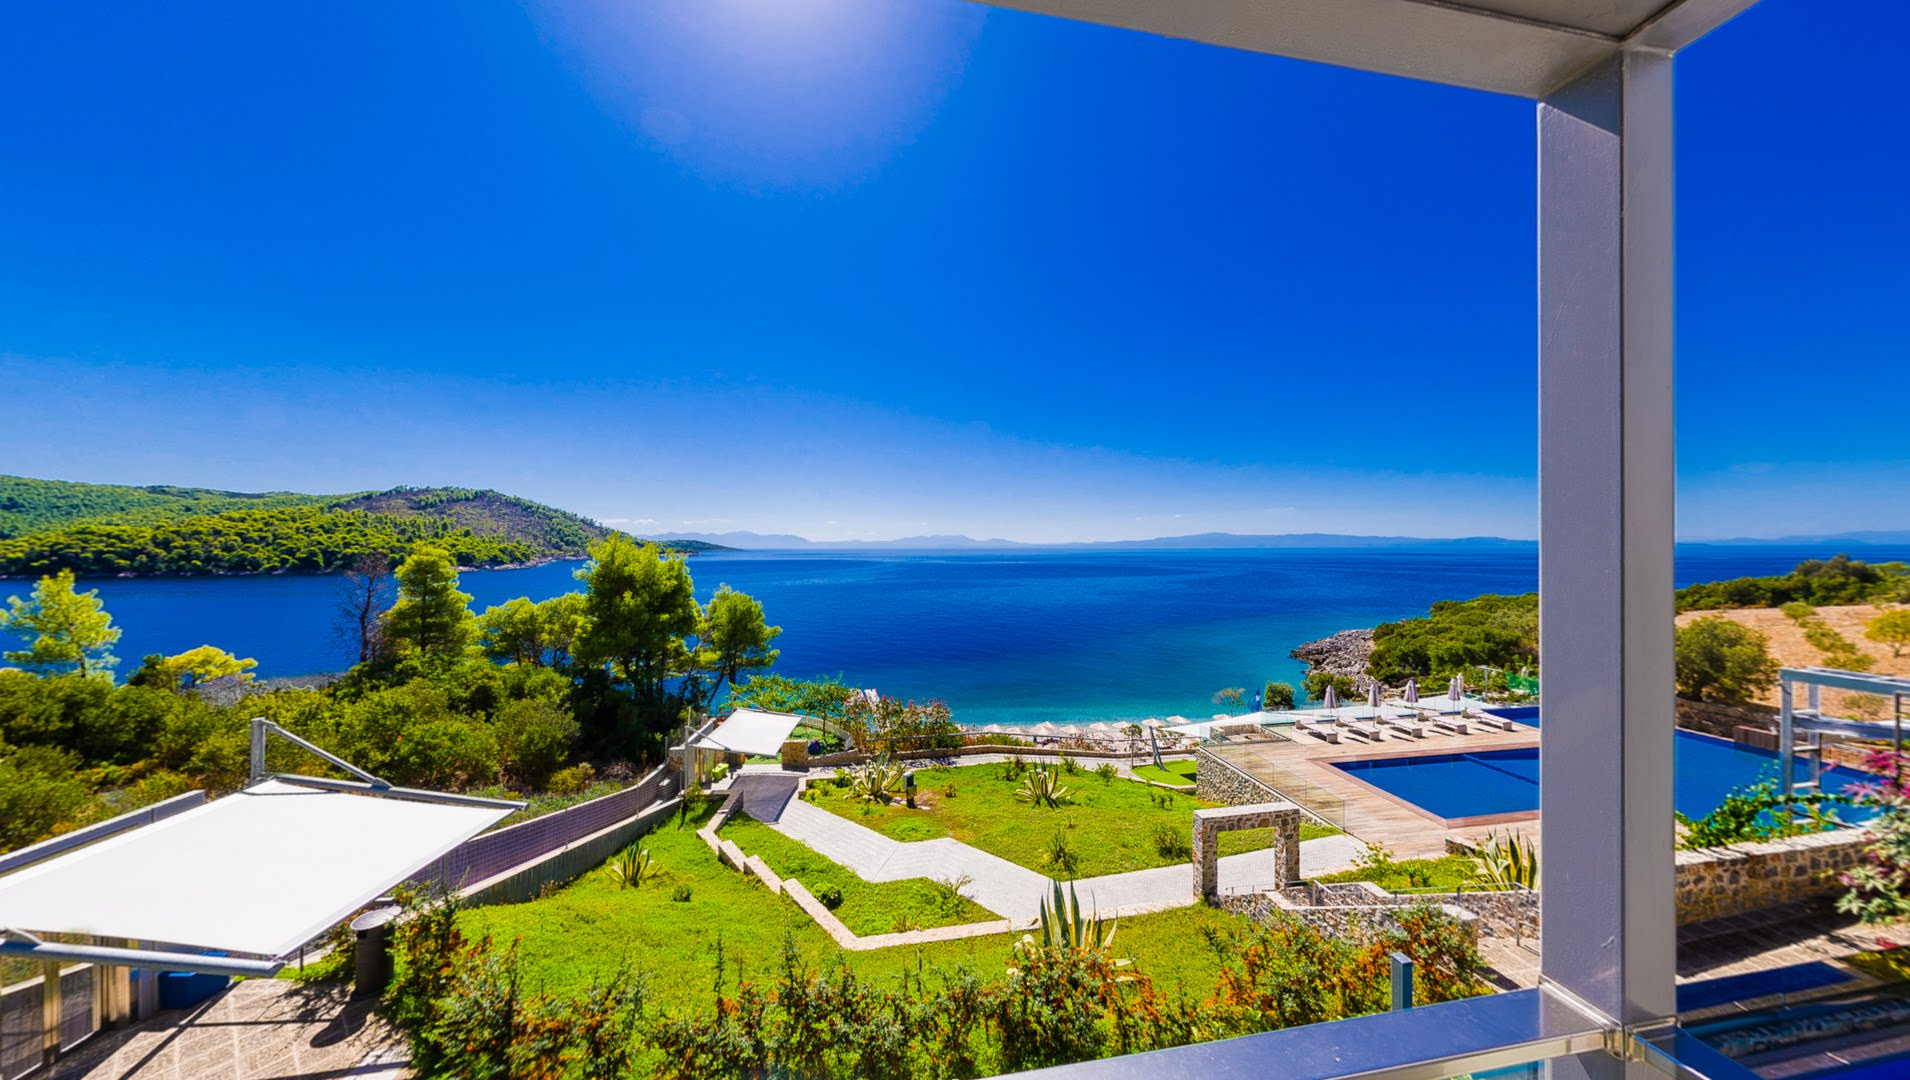 skopelos hotels adrina resort pool villa 56.49